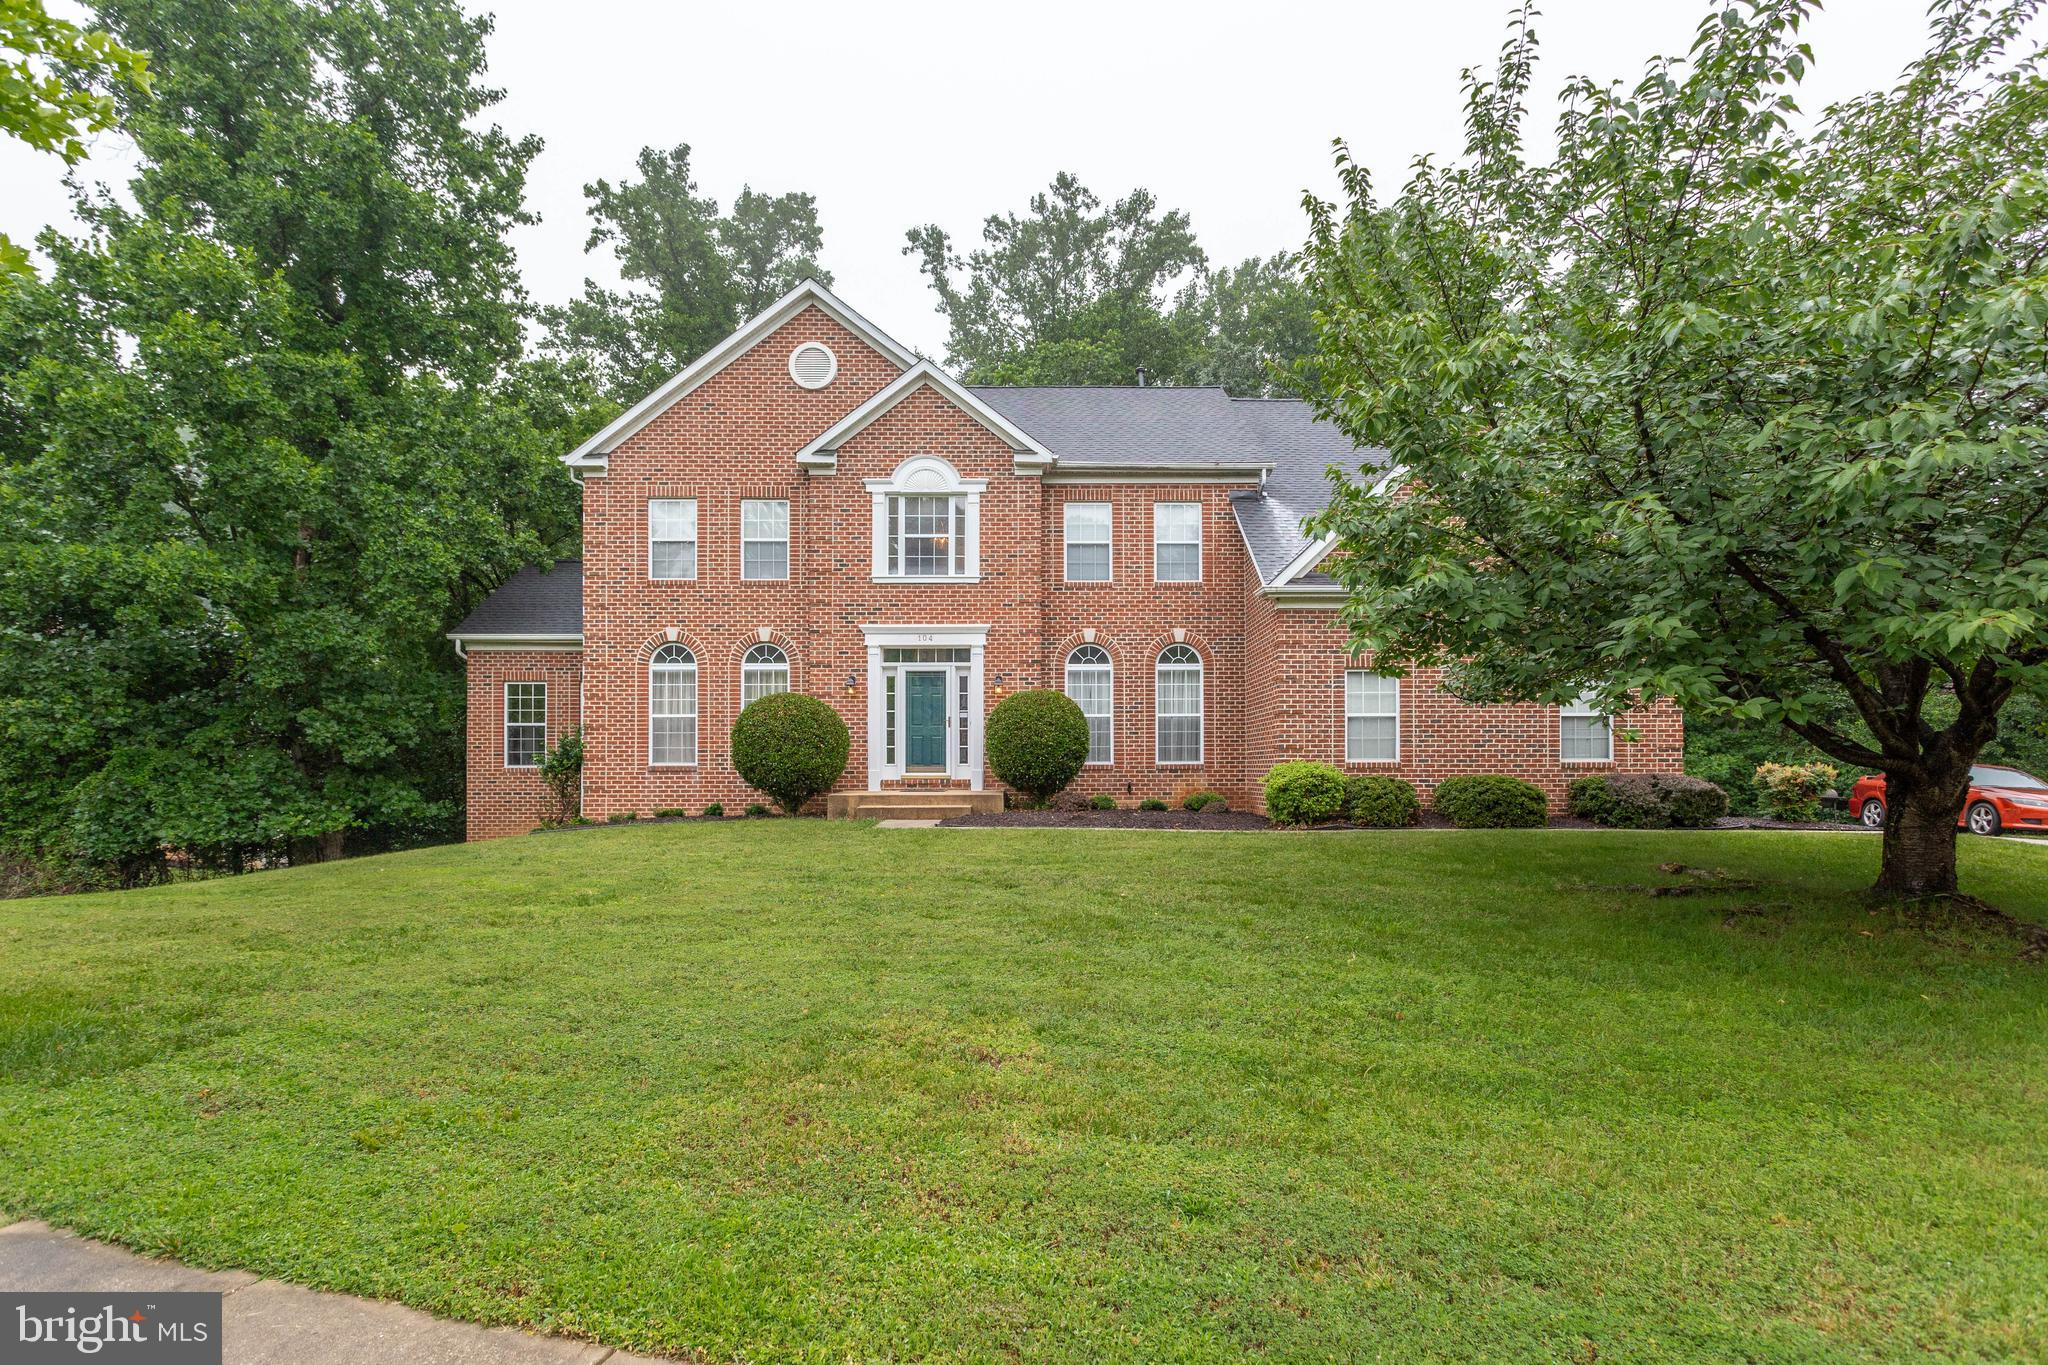 104 BRIGHTON KNOLL COURT, ACCOKEEK, MD 20607